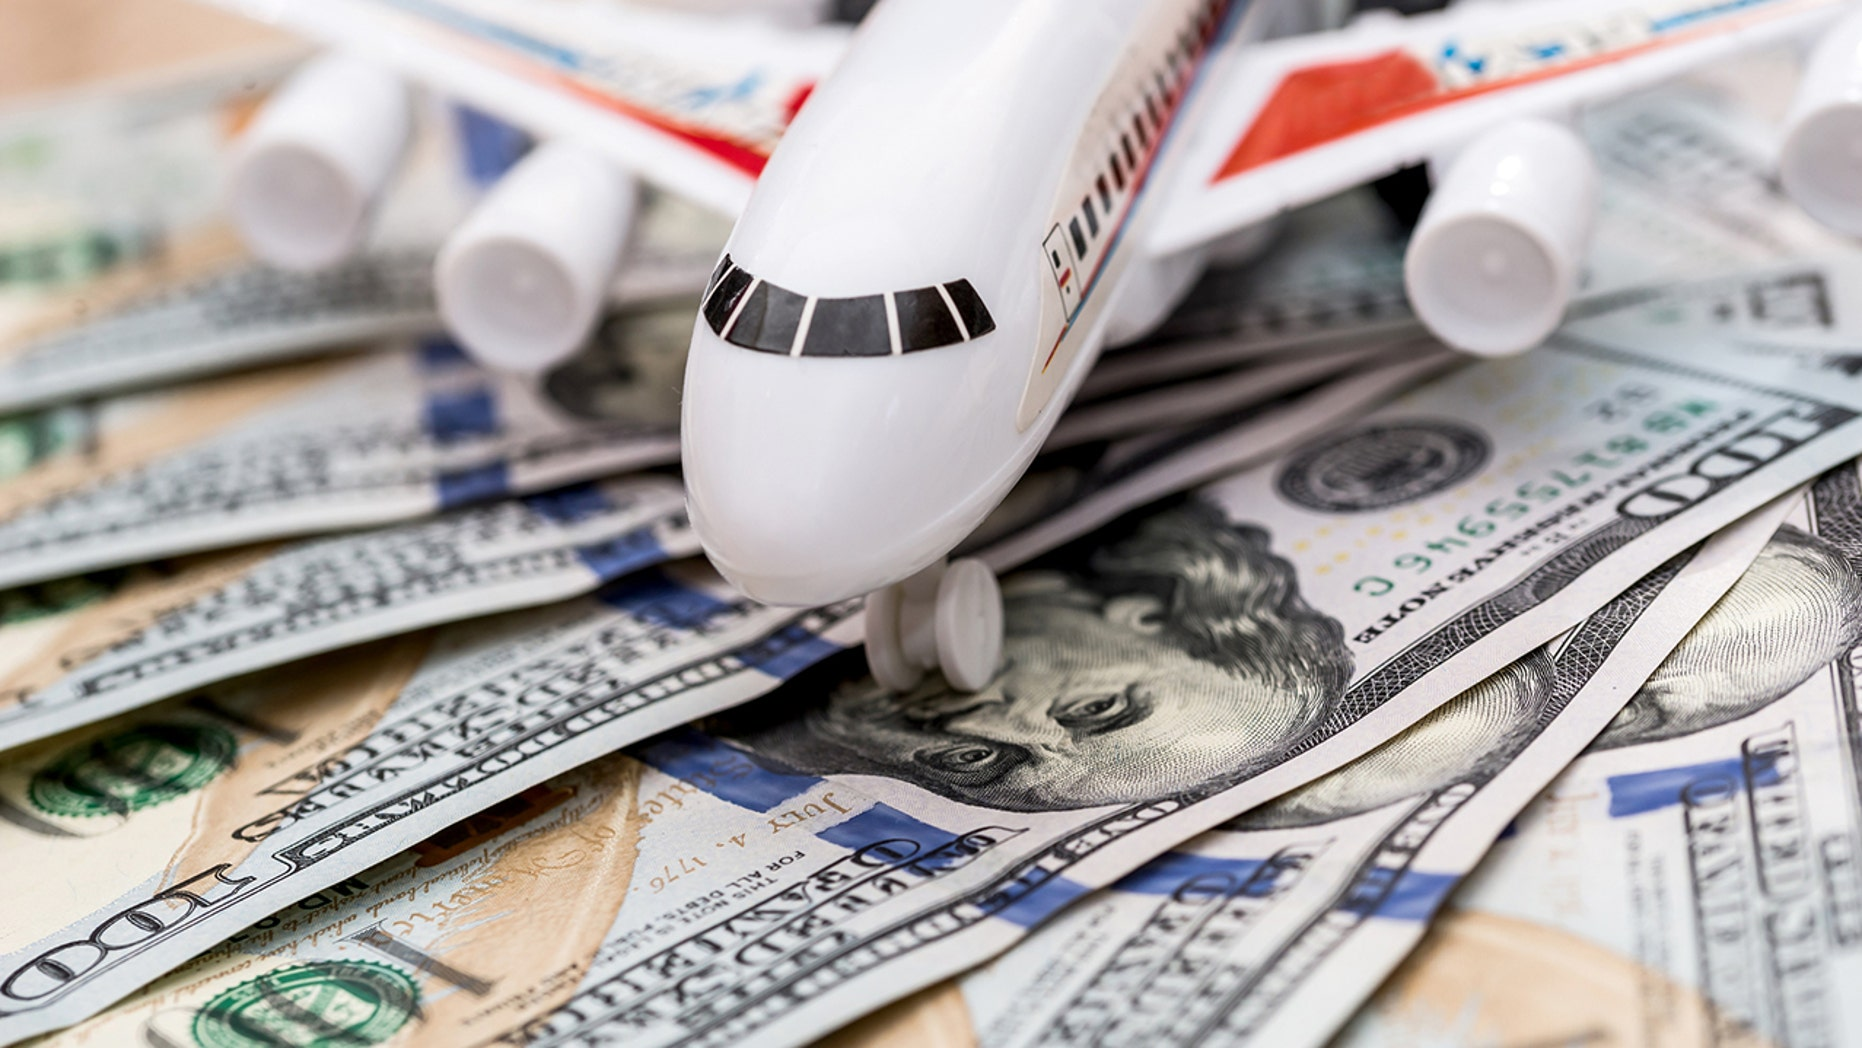 Avoid paying extra with a couple of tips from a savvy traveler. And stop spending so much money on tiny model planes.